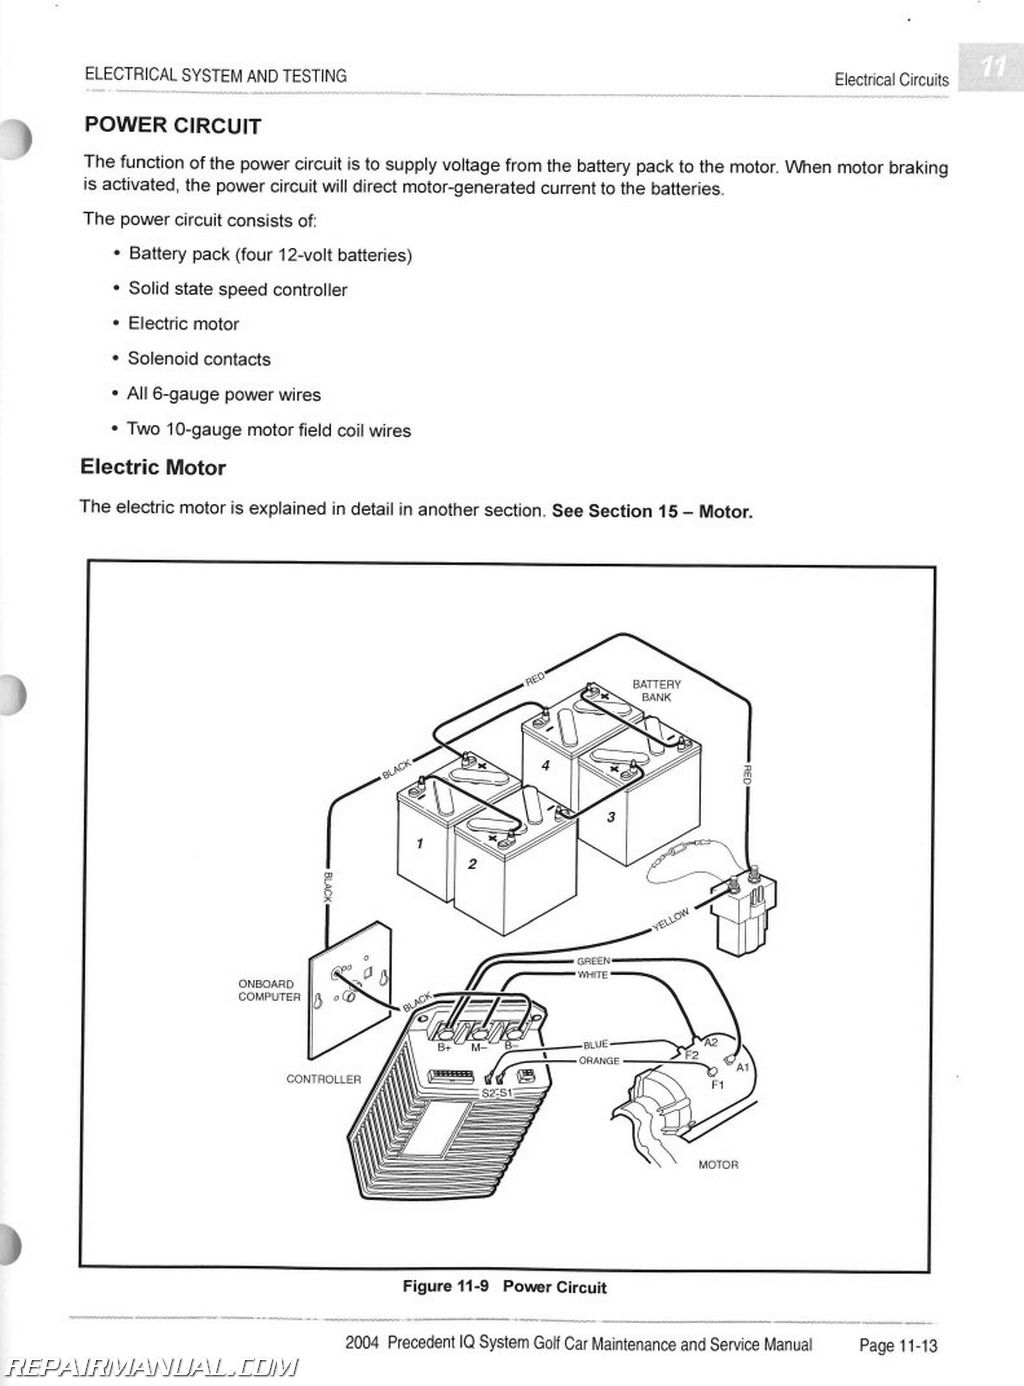 wiring diagram for 48 volt 2007 club car ds golf cart 36